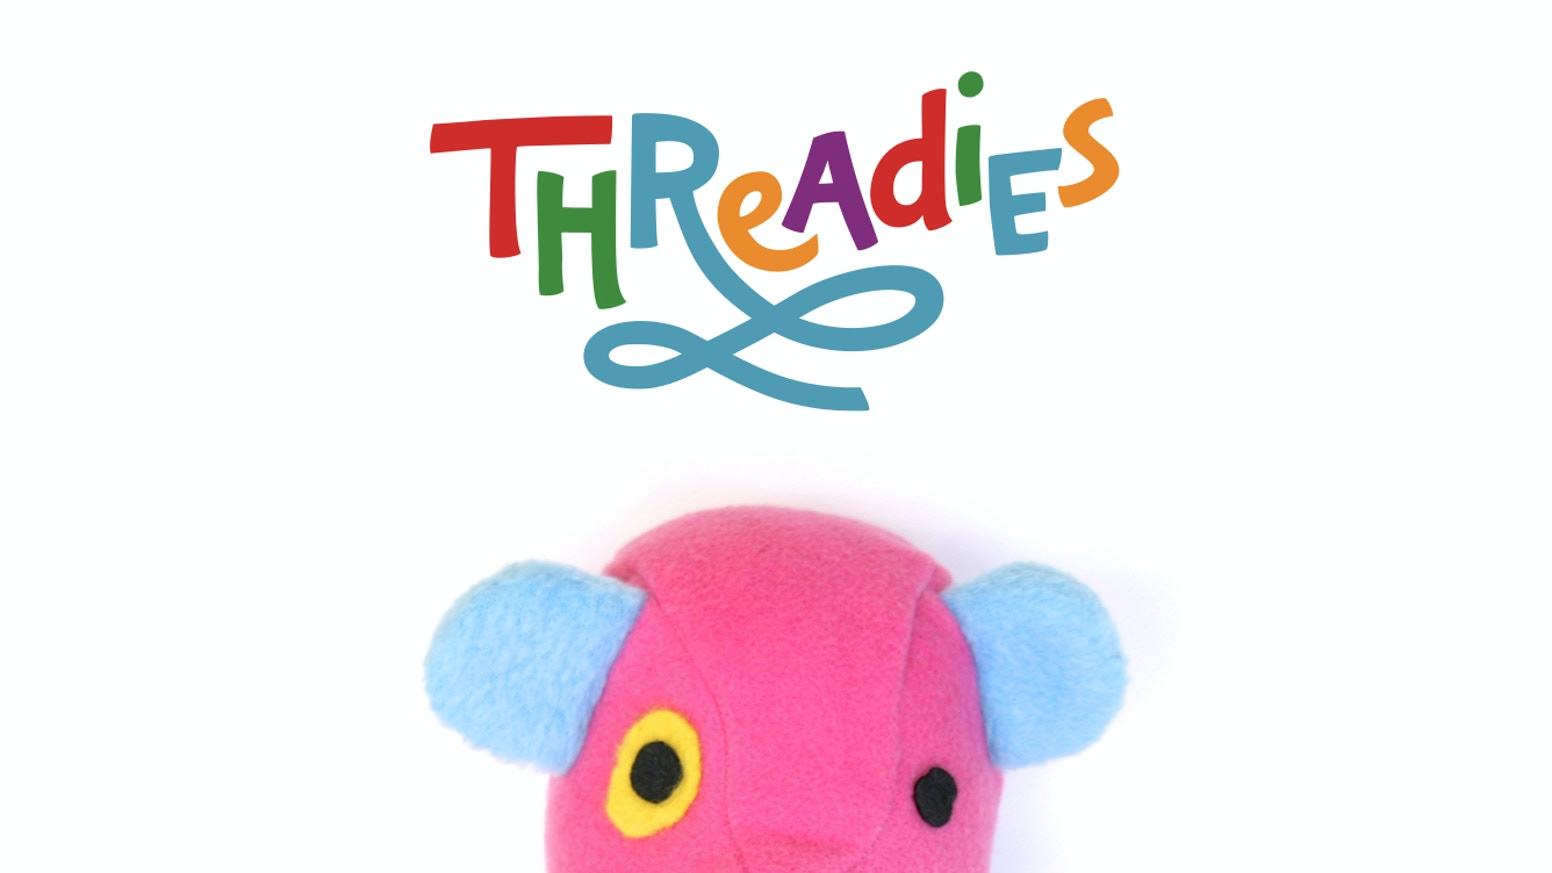 Threadies are handmade bears that provide trauma support for refugees. Buy a Thready and its unique twin is given to a child in need.